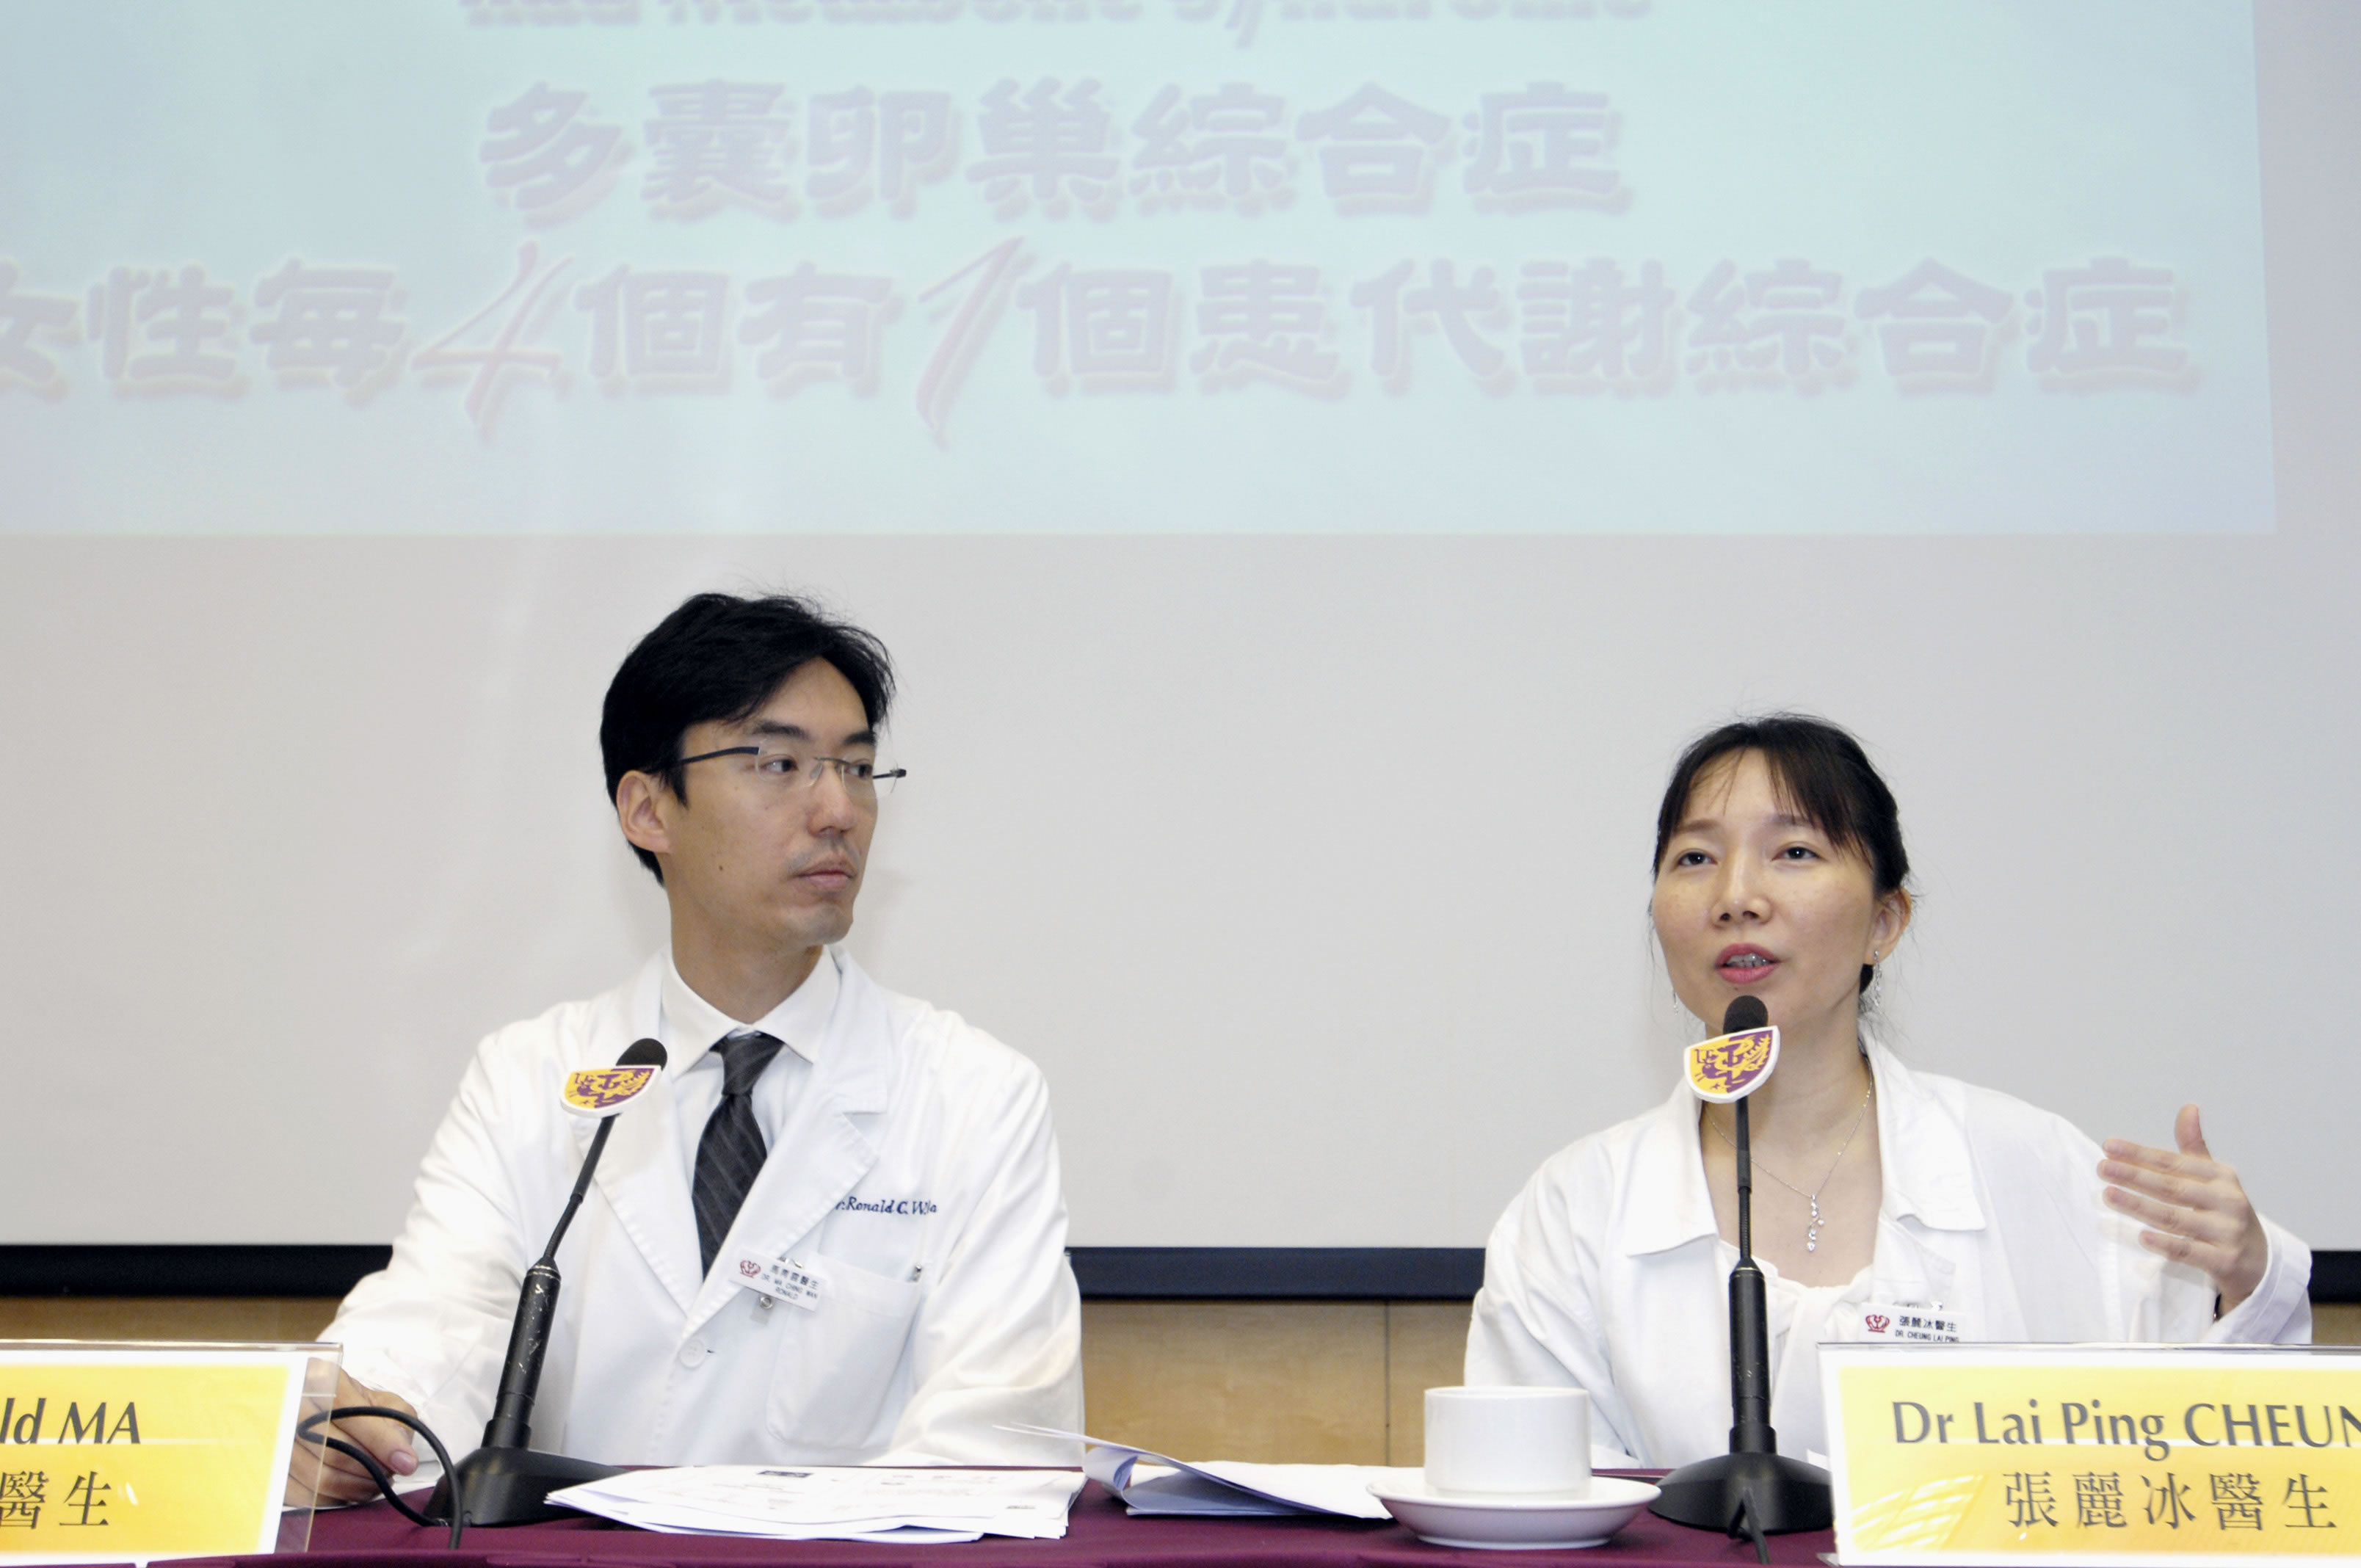 (Left) Dr Ronald MA, Associate Professor, Department of Medicine and Therapeutics, CUHK; Dr Lai Ping CHEUNG, Honorary Clinical Associate Professor, Department of Obstetrics and Gynaecology, CUHK